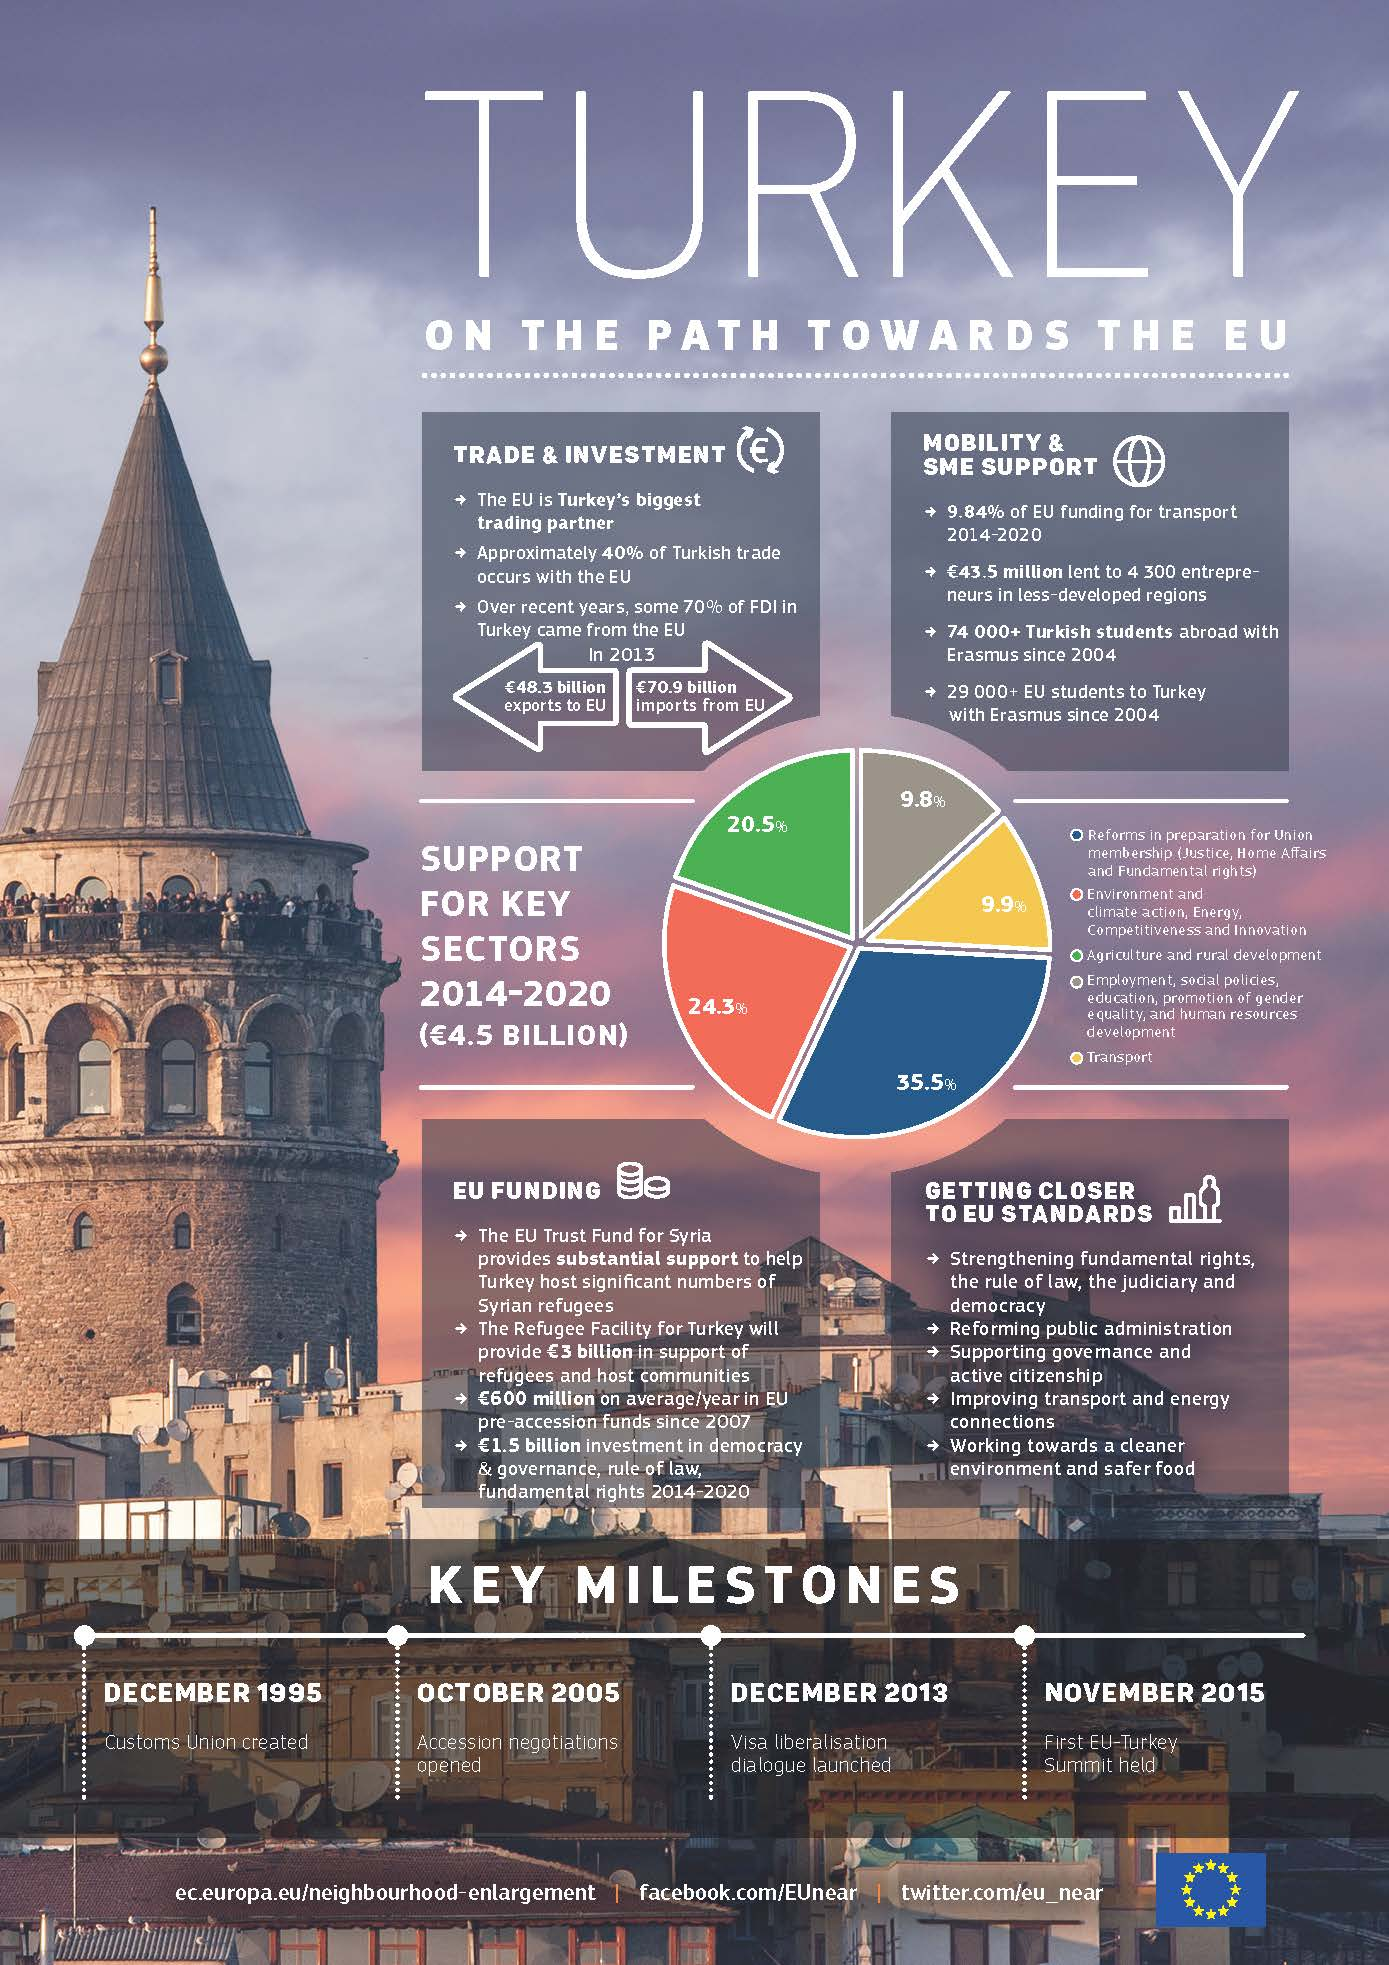 Quick facts and milestones on Turkey's path to joining the European Union.